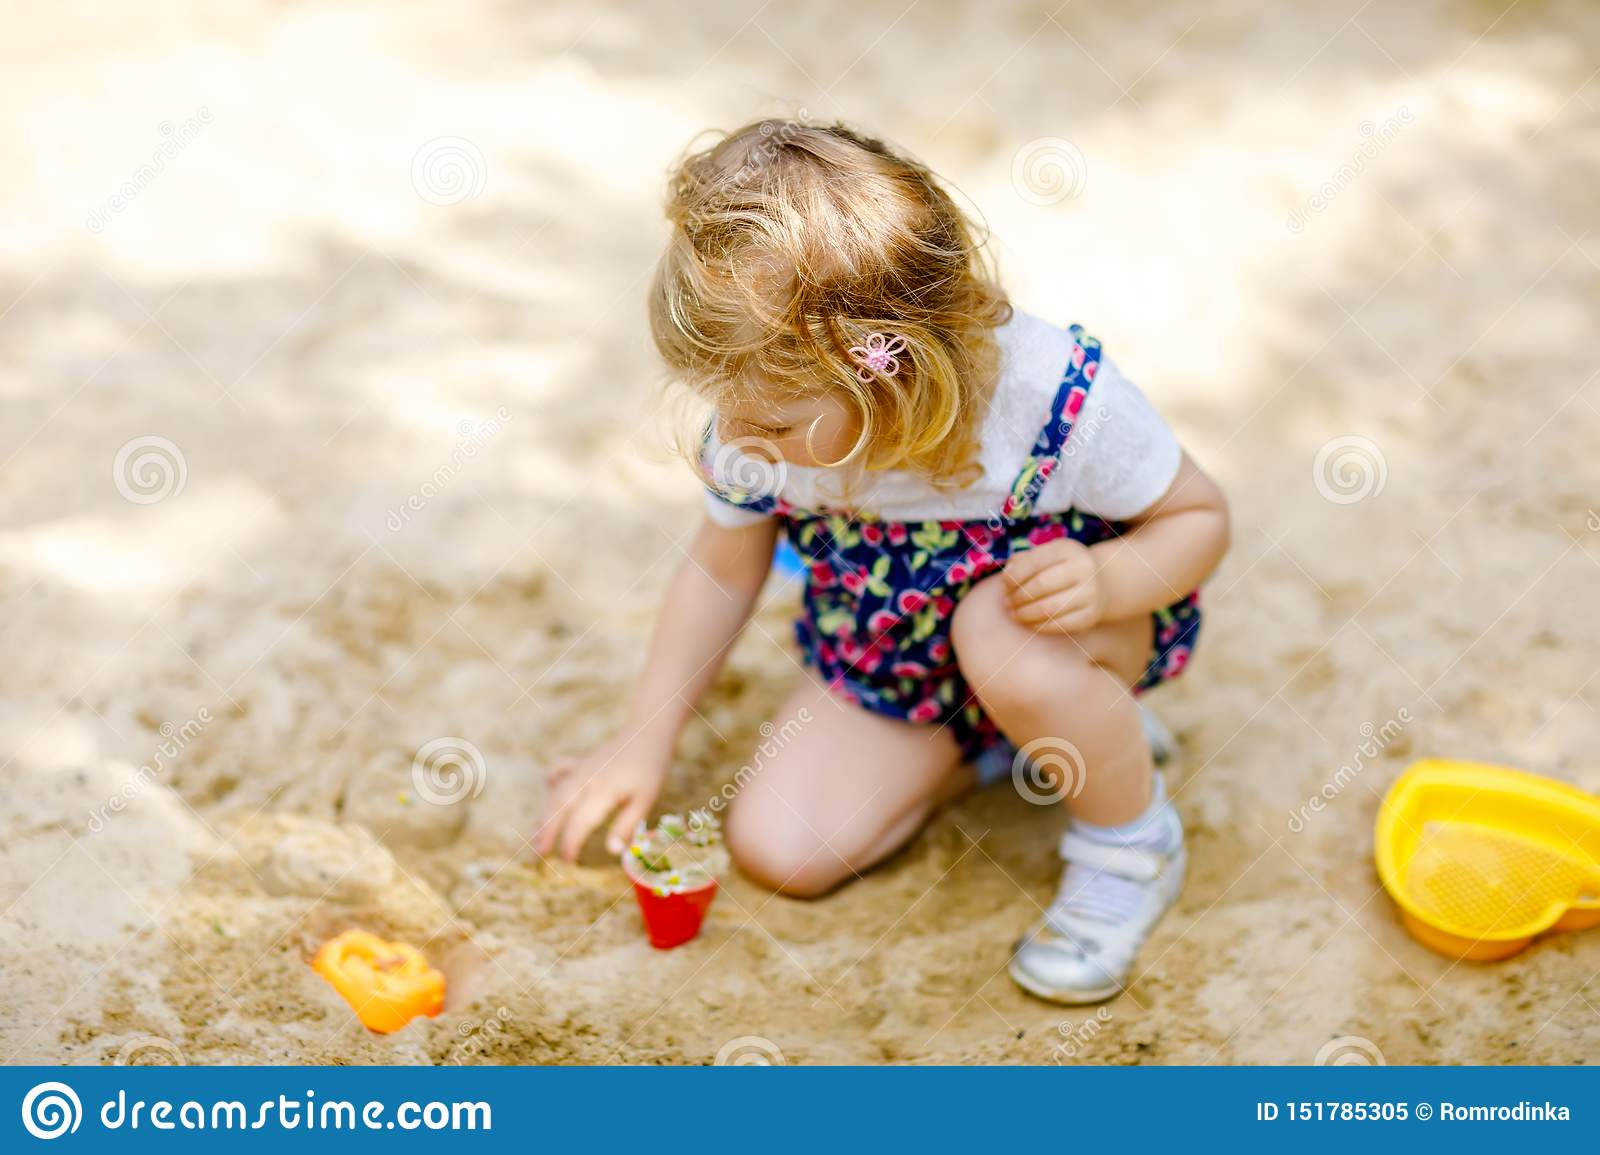 Cute toddler girl playing in sand on outdoor playground. Beautiful baby in red trousers having fun on sunny warm summer